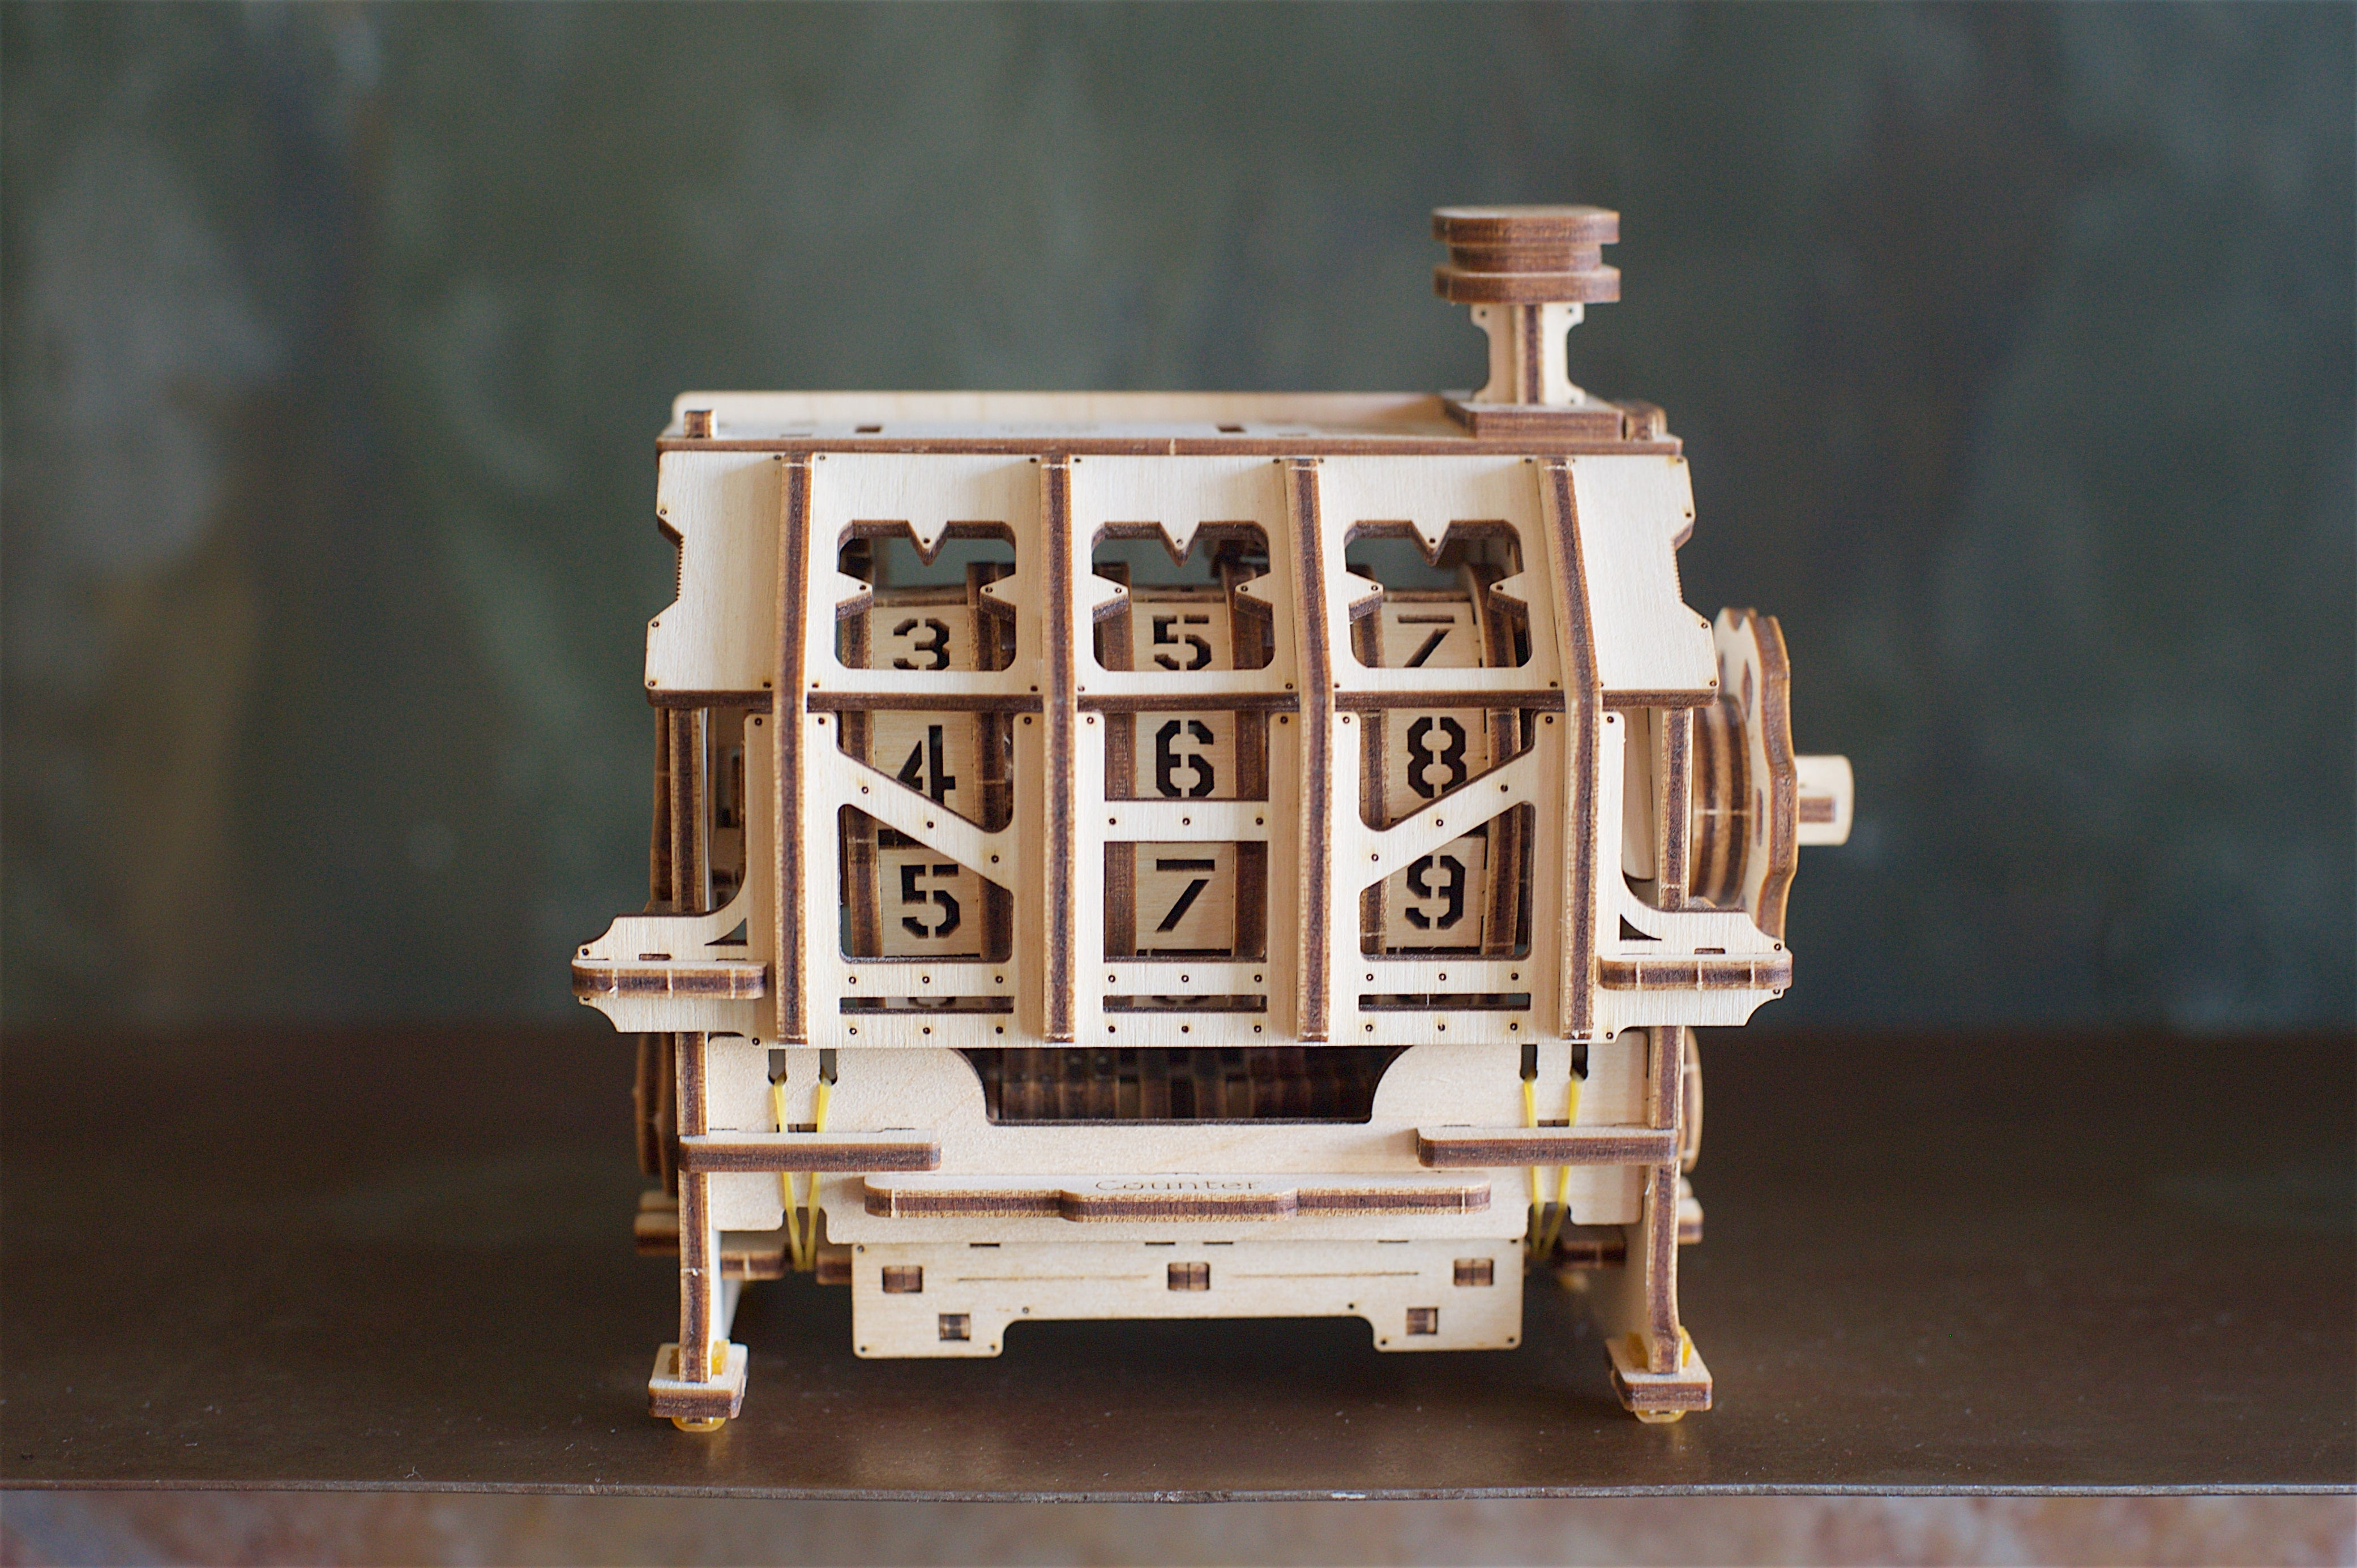 Fuego Cloud 3D Wooden Mechanical DIY Model Kit Counter Front View